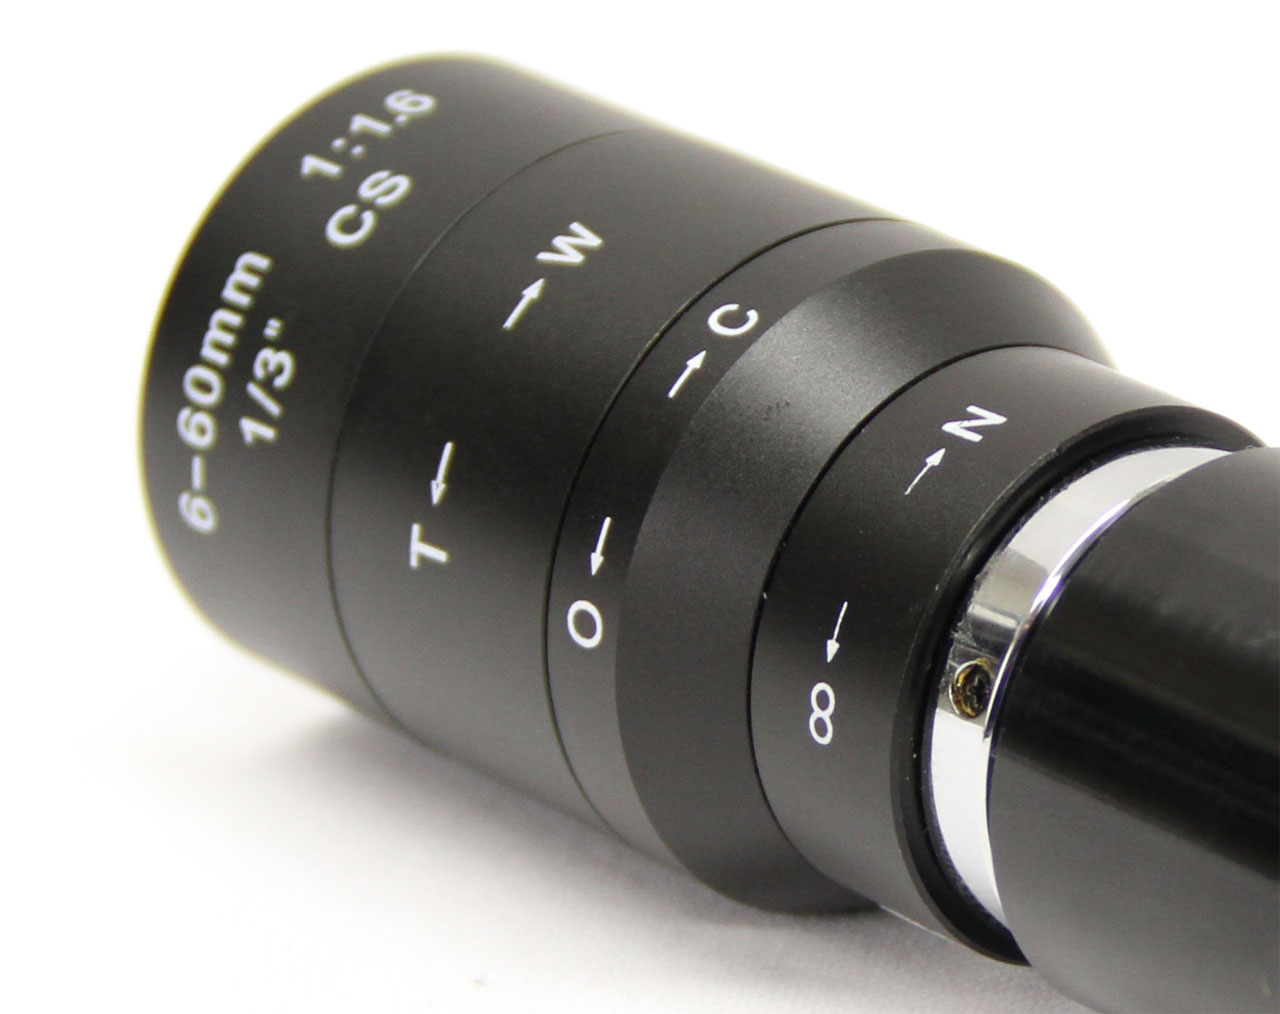 A close up of a microscopic lens for C-Mount cameras.